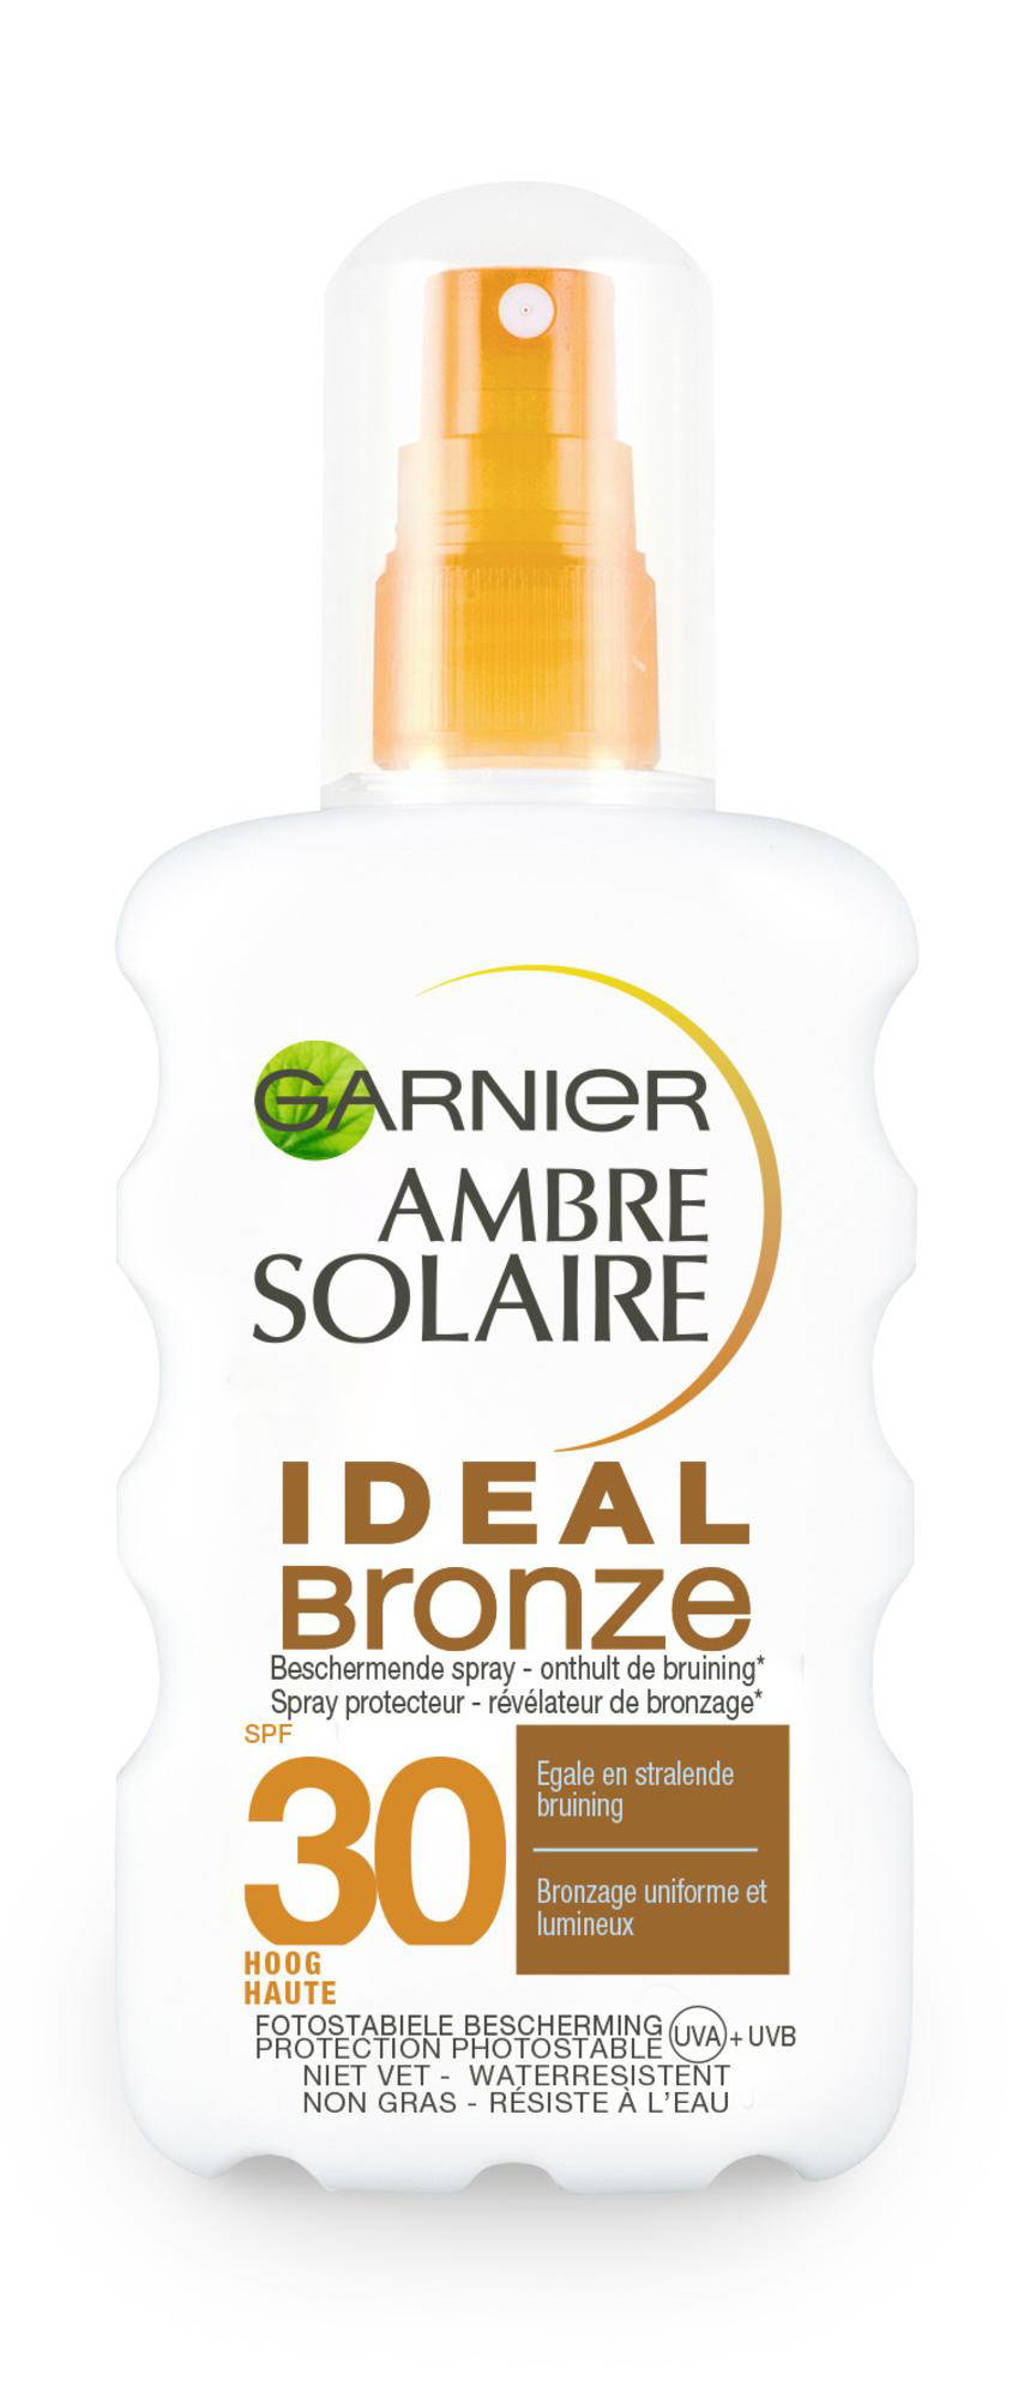 Ambre Solaire Ideal Bronze zonnebrand spray SPF 30 - 200 ml, Zonnefactor SPF 30